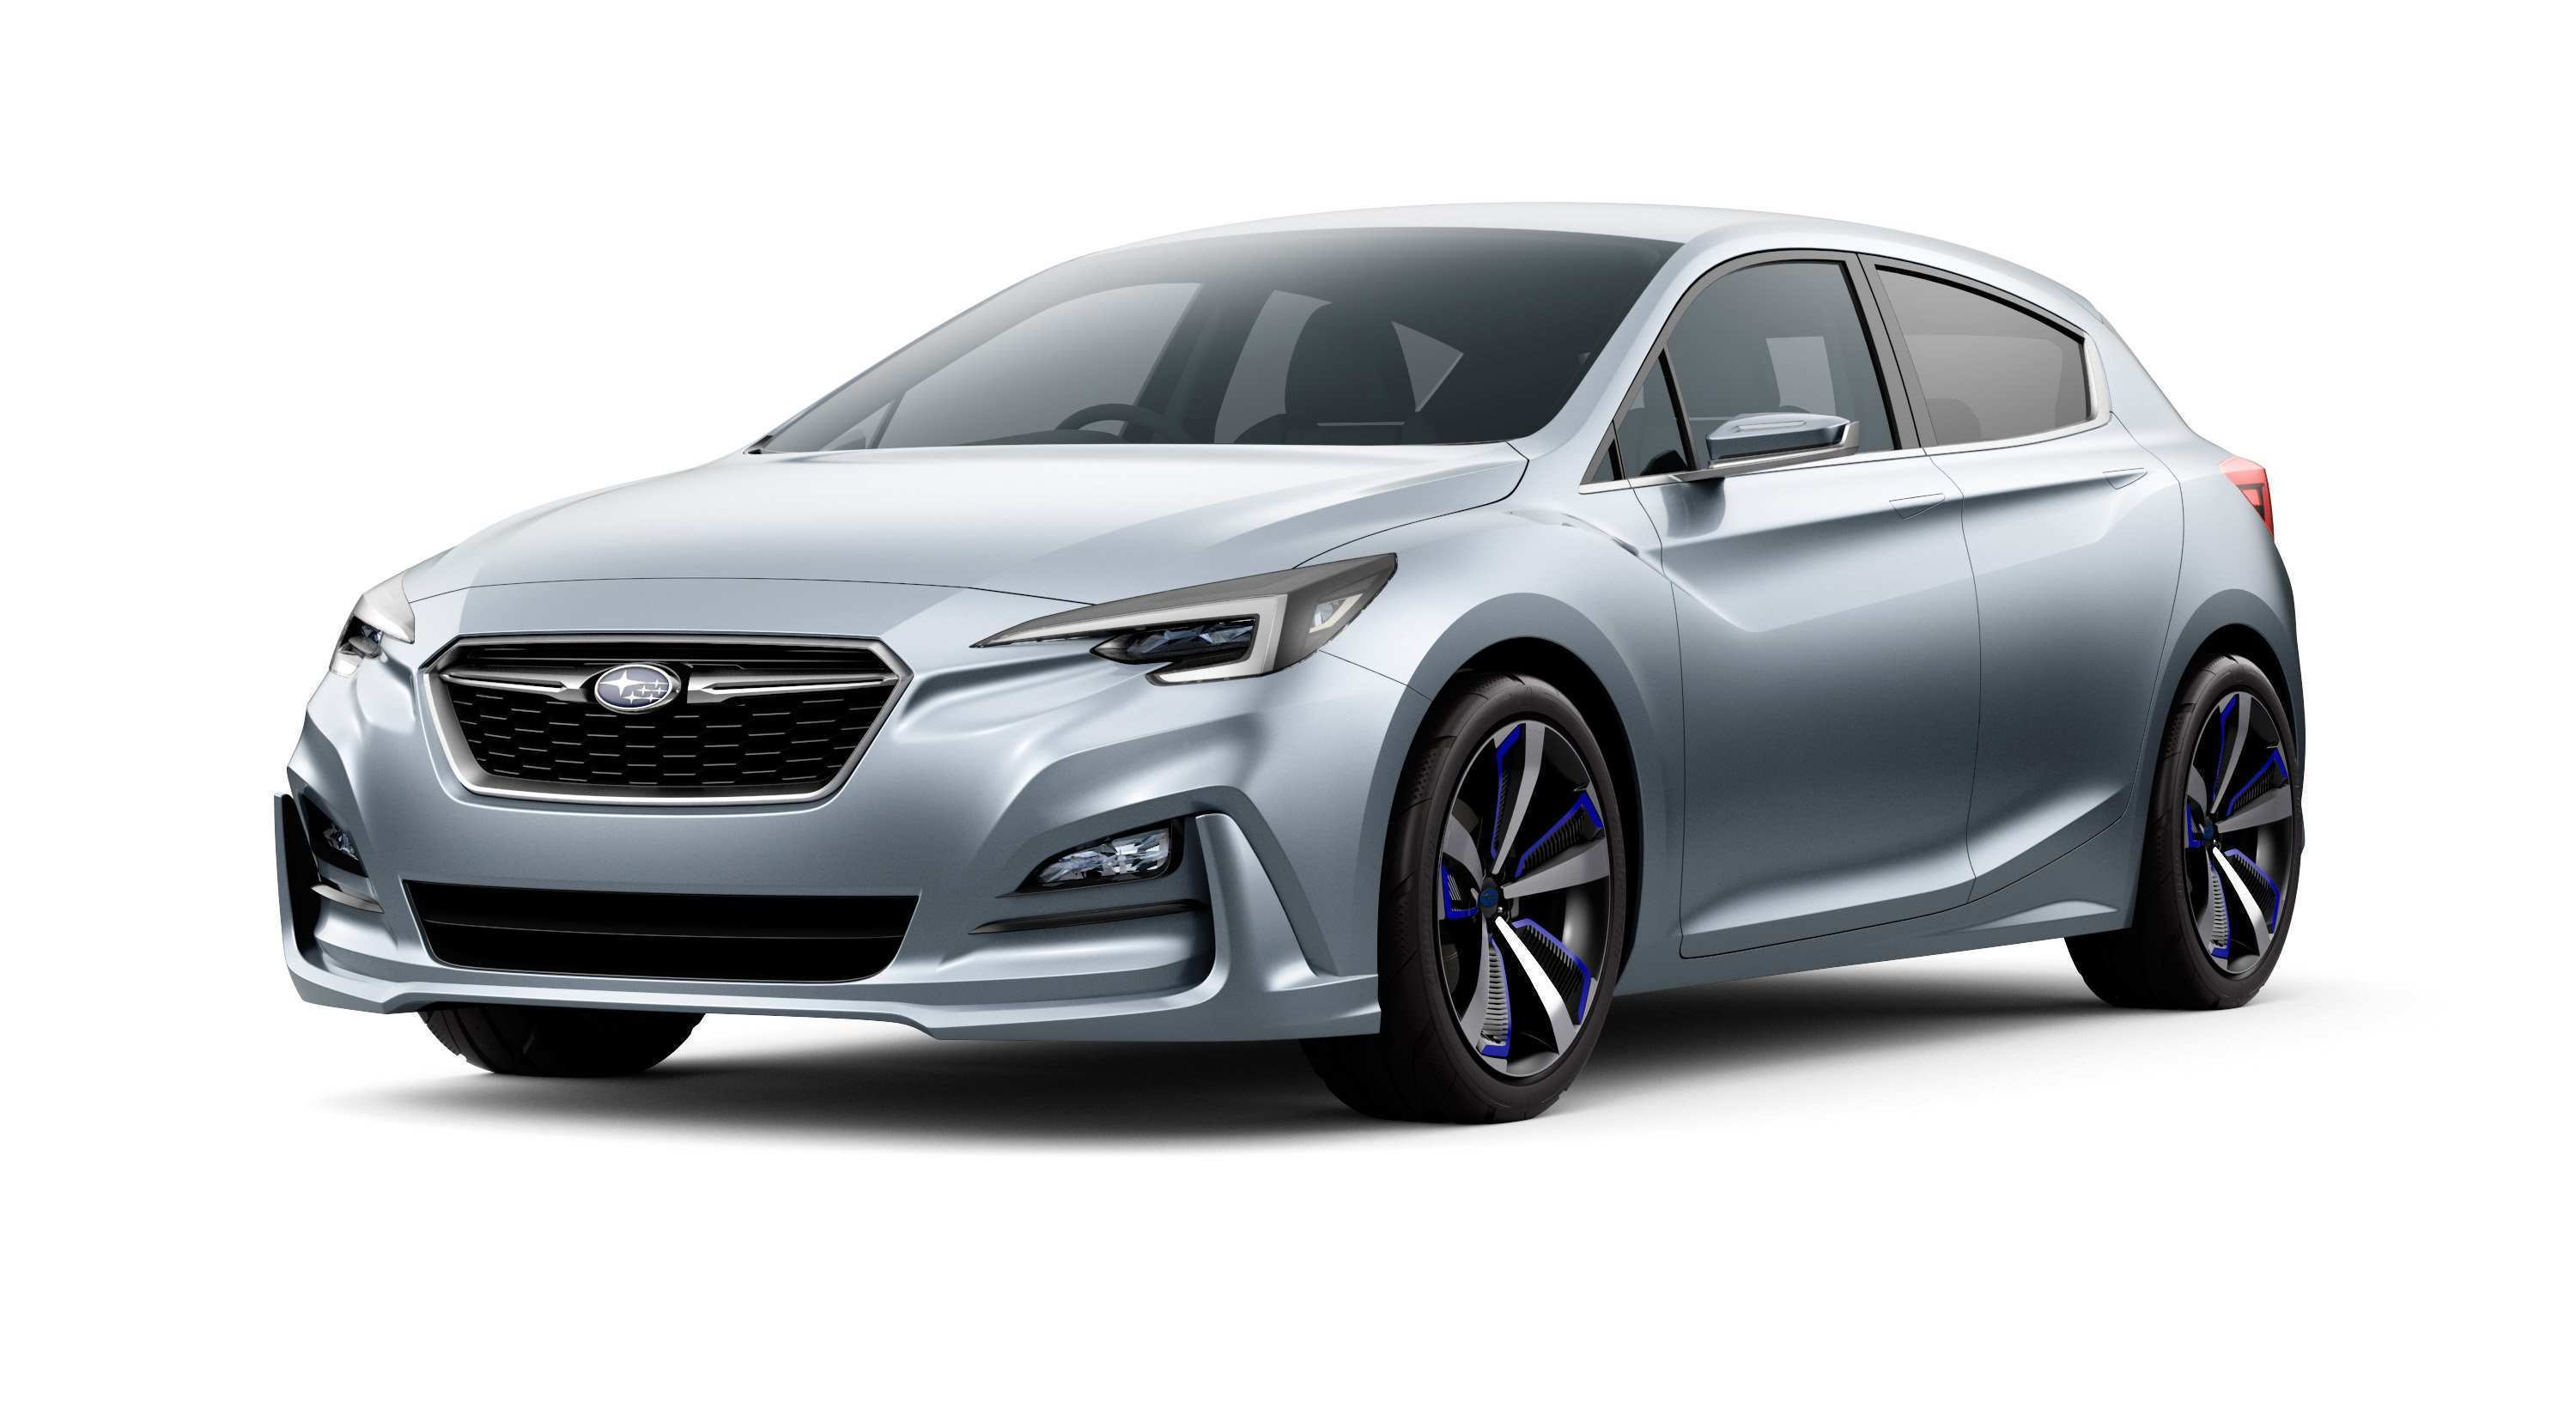 31 Best Review Subaru Prominence 2020 Ratings for Subaru Prominence 2020